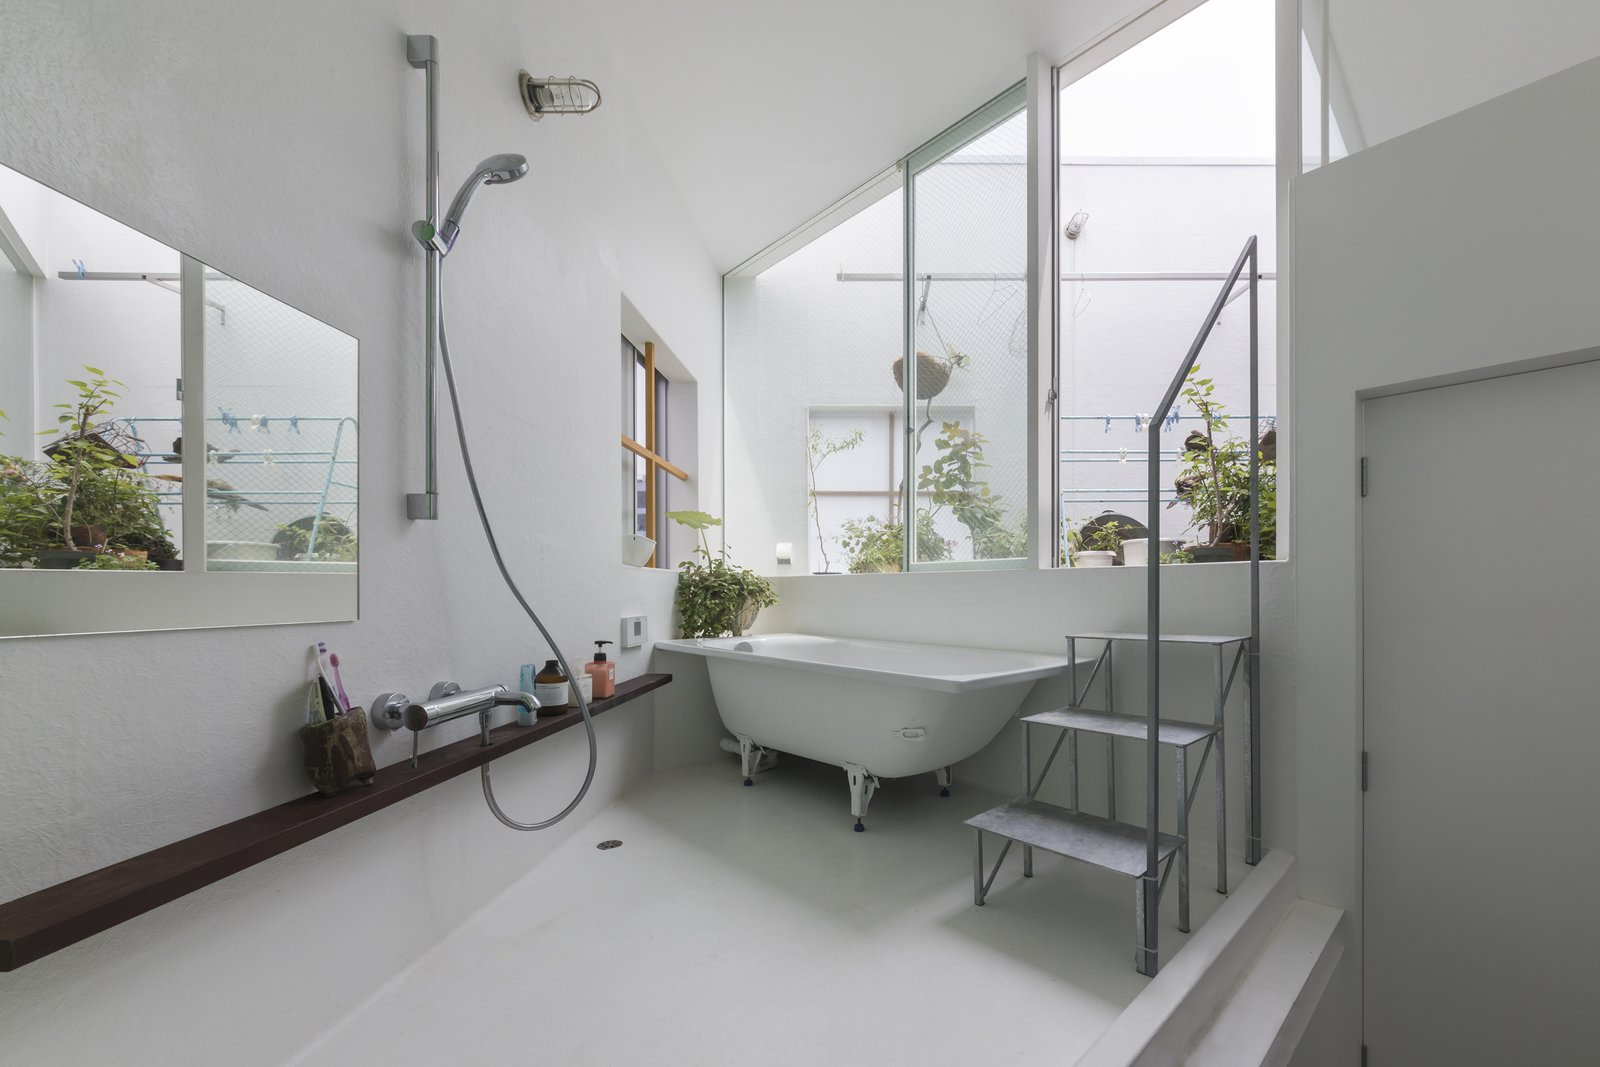 Bath Room, Open Shower, Freestanding Tub, and Wall Lighting A bathroom leads out to one of the roof terraces.  Best Photos from 13 Spiraling Platforms Increase Space and Connection in This One-Room Home